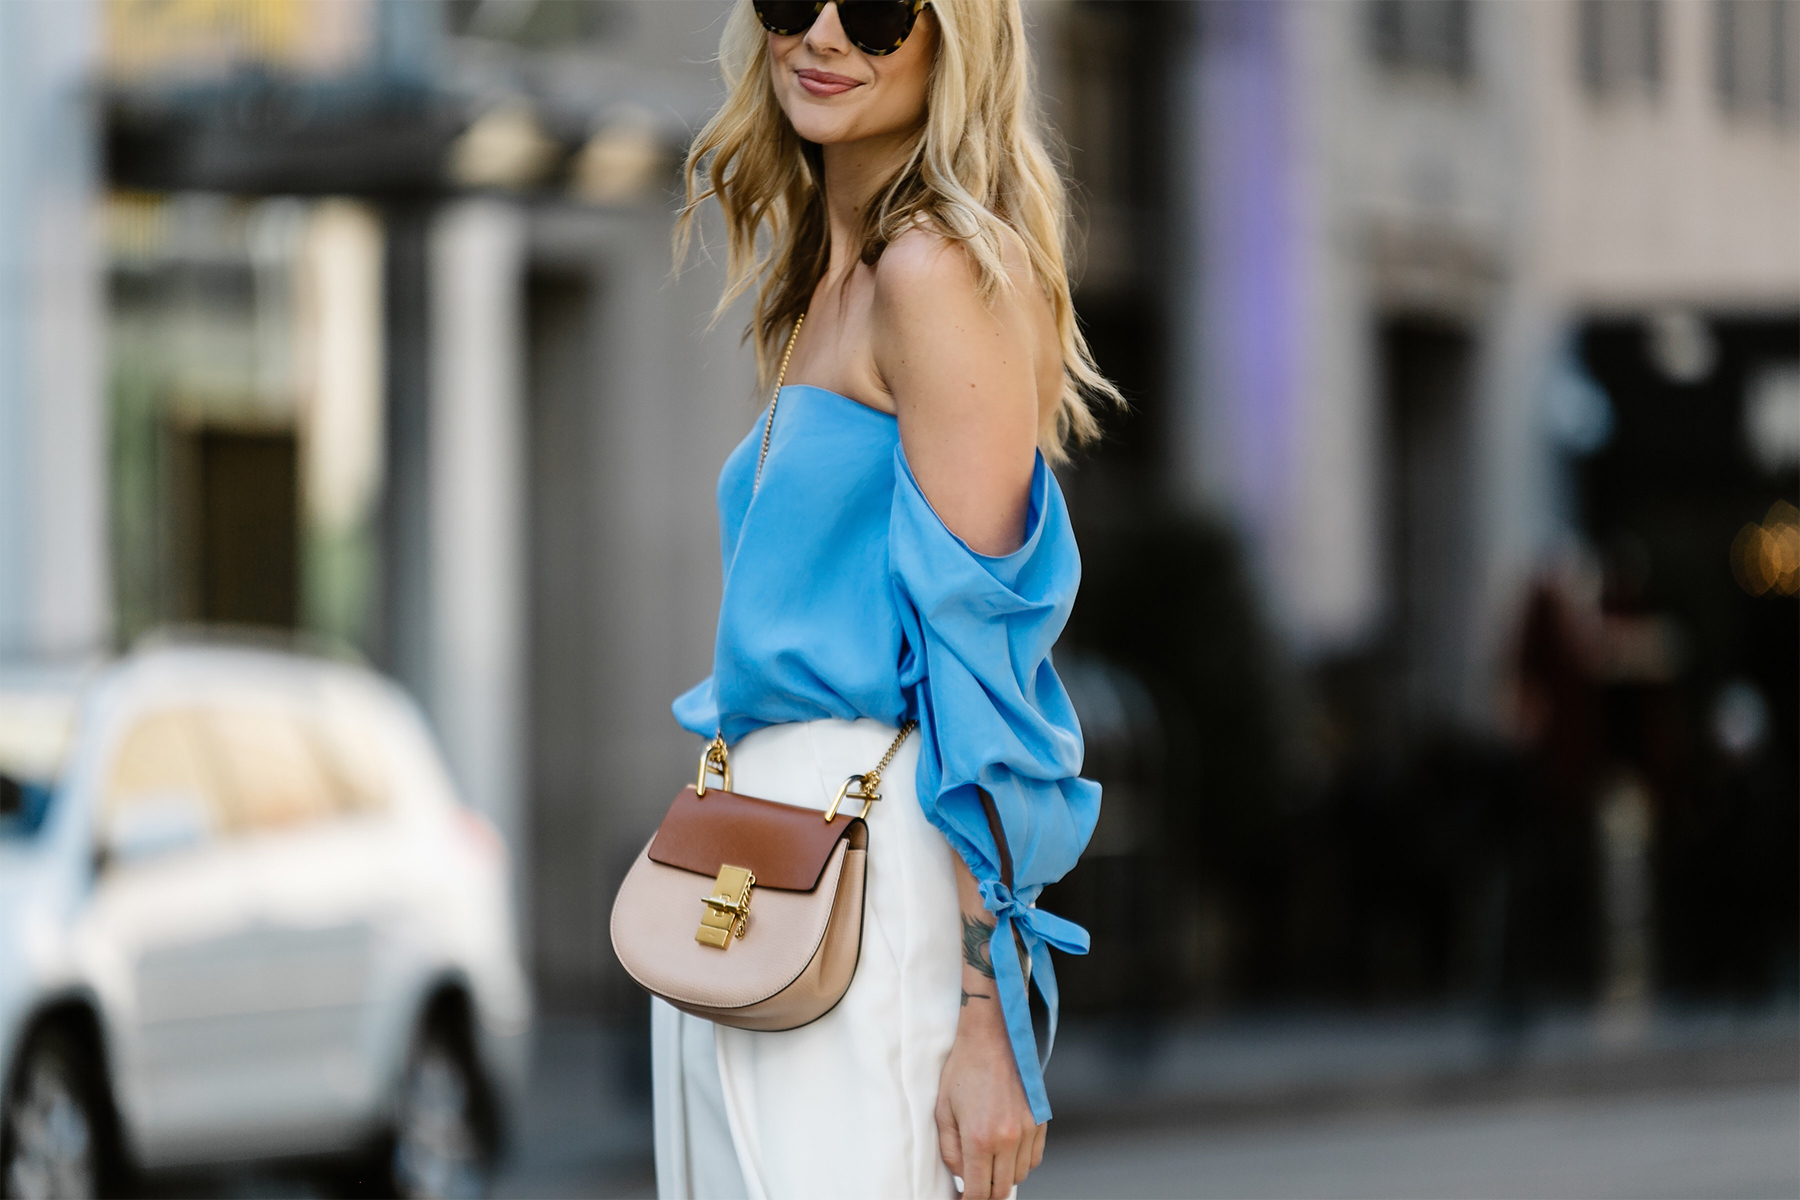 Fashion Jackson, Dallas Blogger, Fashion Blogger, Street Style, Club Monaco Liki Top, Blue Off-the-Shoulder Top, White Culottes, Chloe Drew Handbag